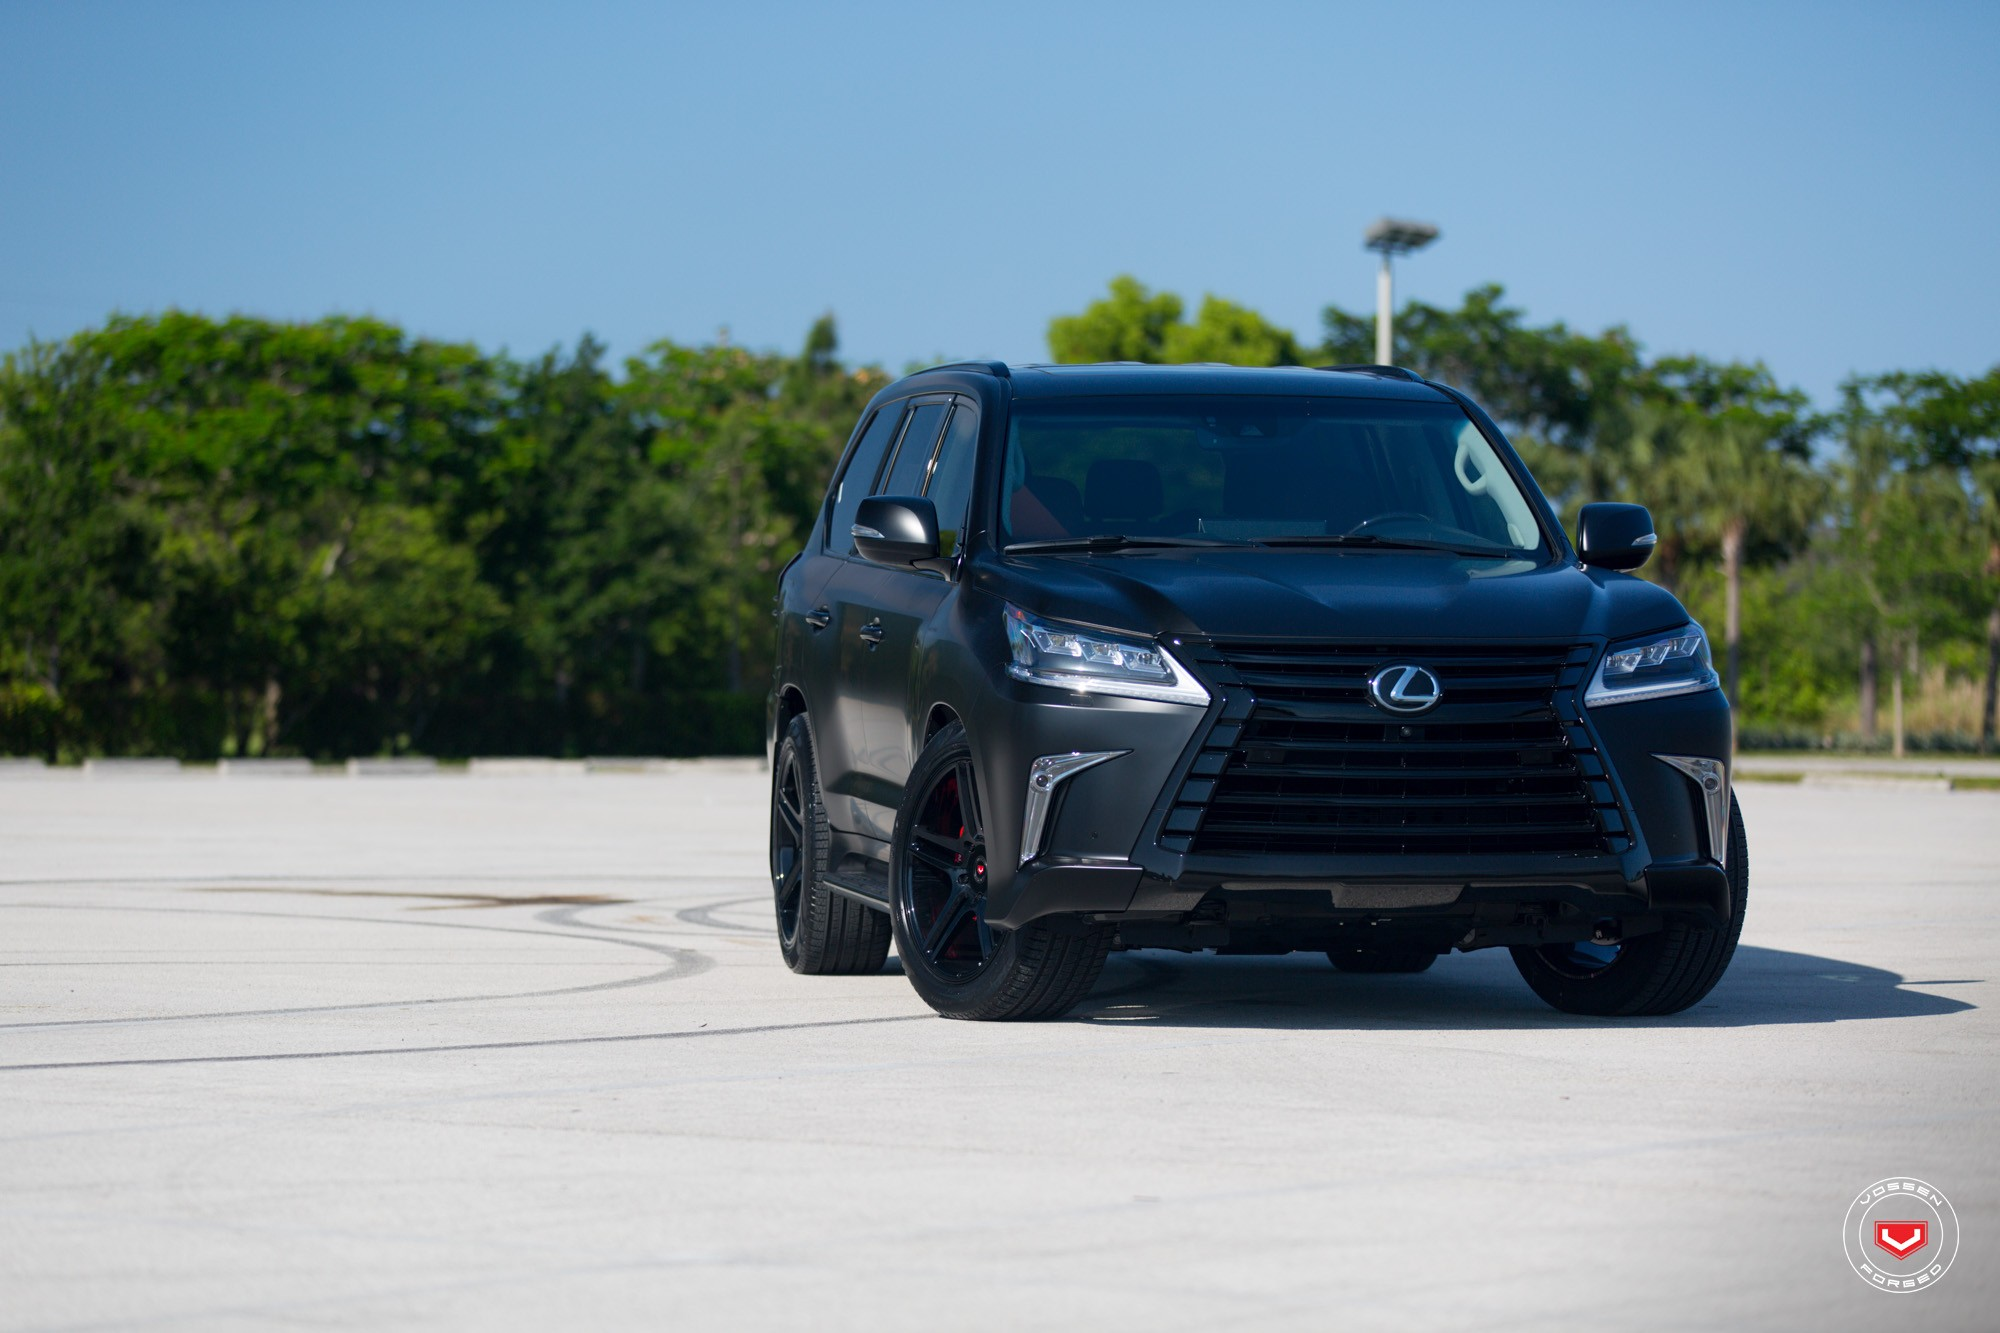 Lexus LX 570 Gets Murdered Out Look And Vossen Wheels